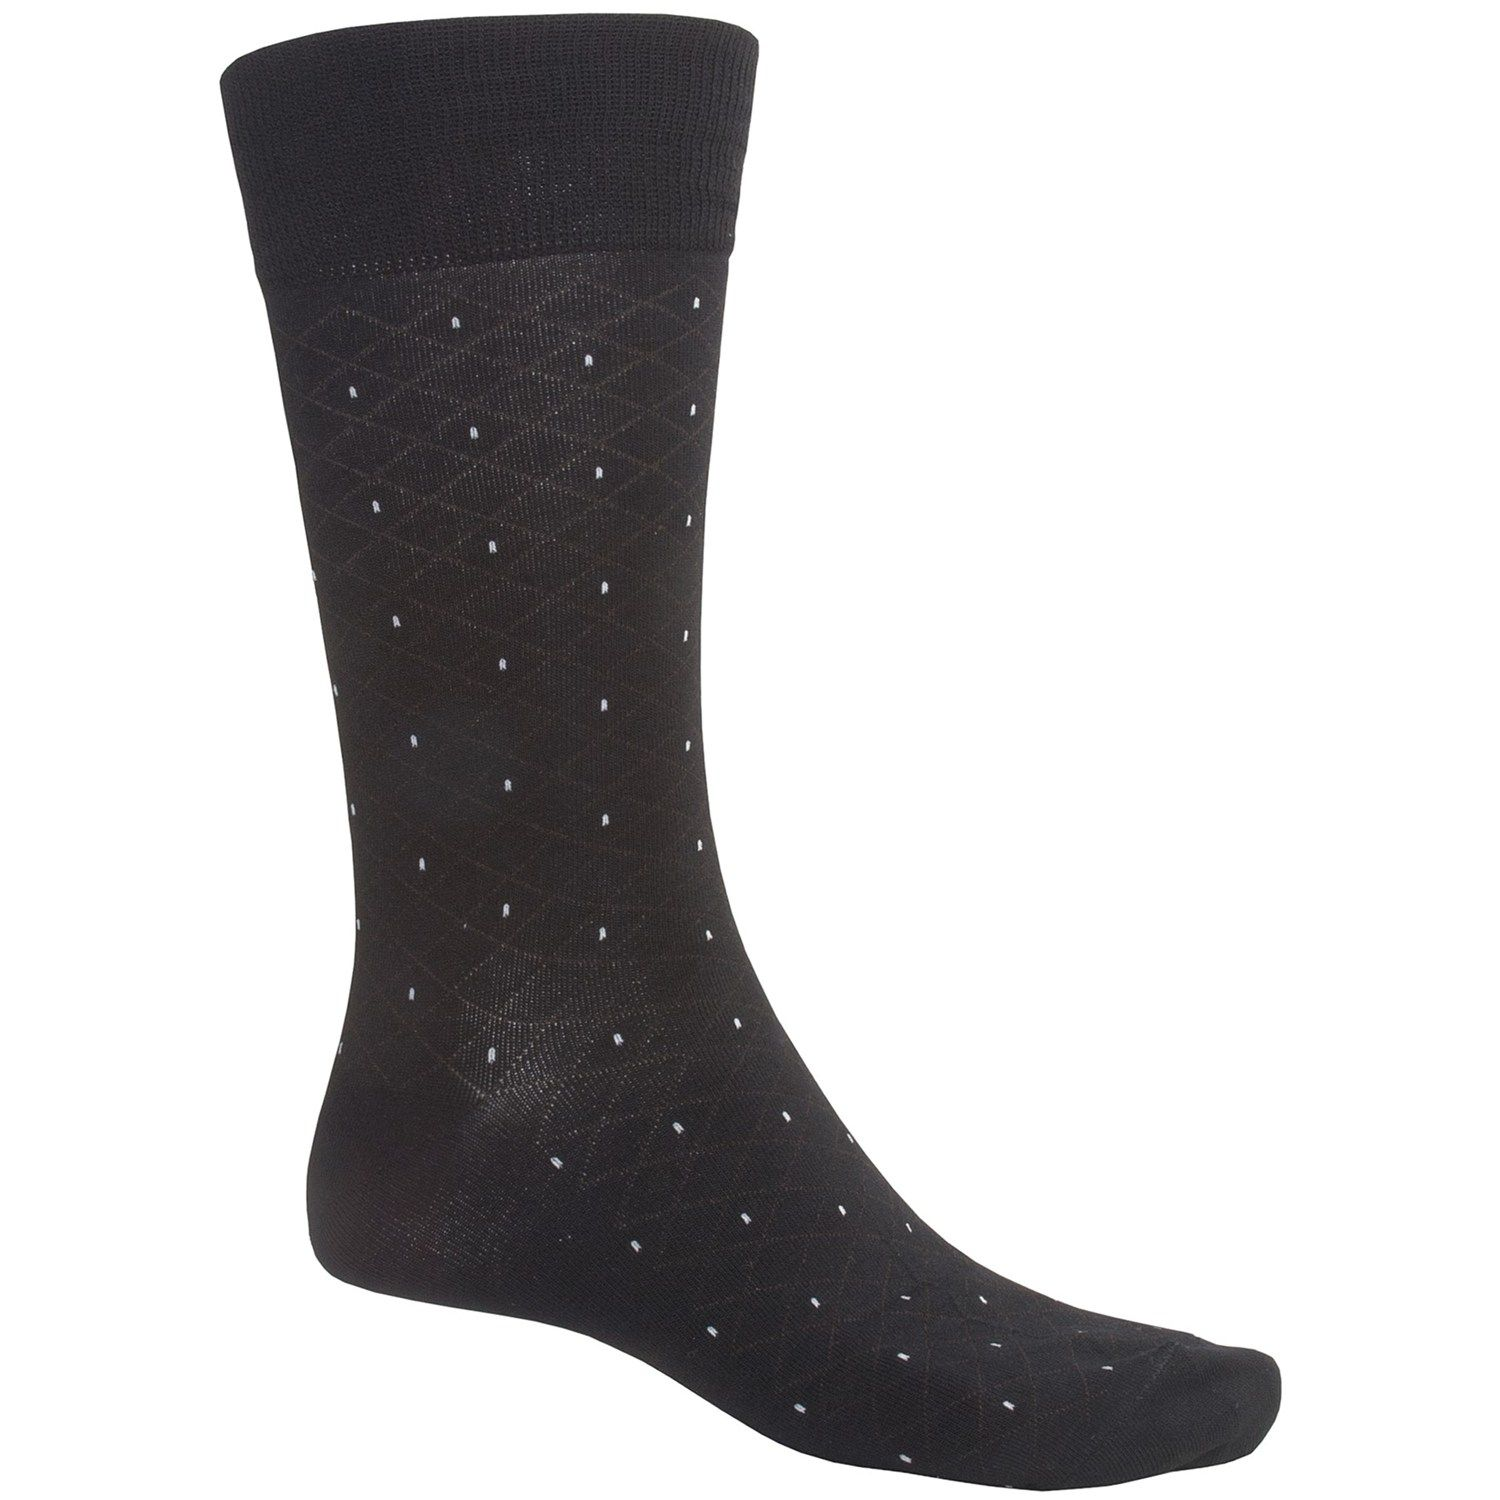 35dda4d6448c ECCO CoolMax® Pin-Dot Dress Socks (For Men) | Dress British, think ...